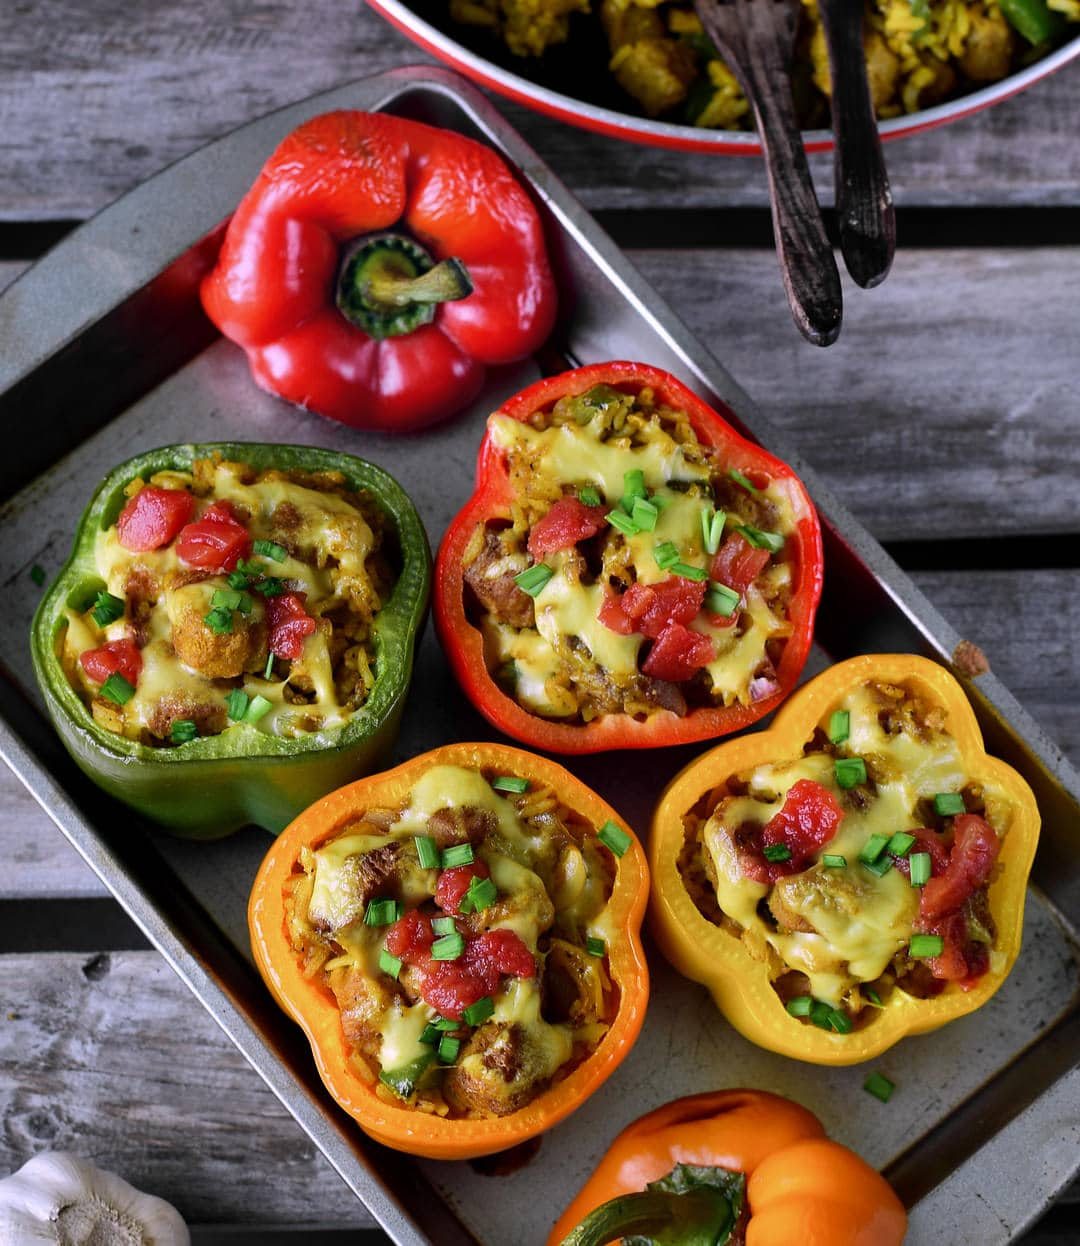 4 stuffed capsicum with rice, soy protein, vegetables, and plant-based cheese